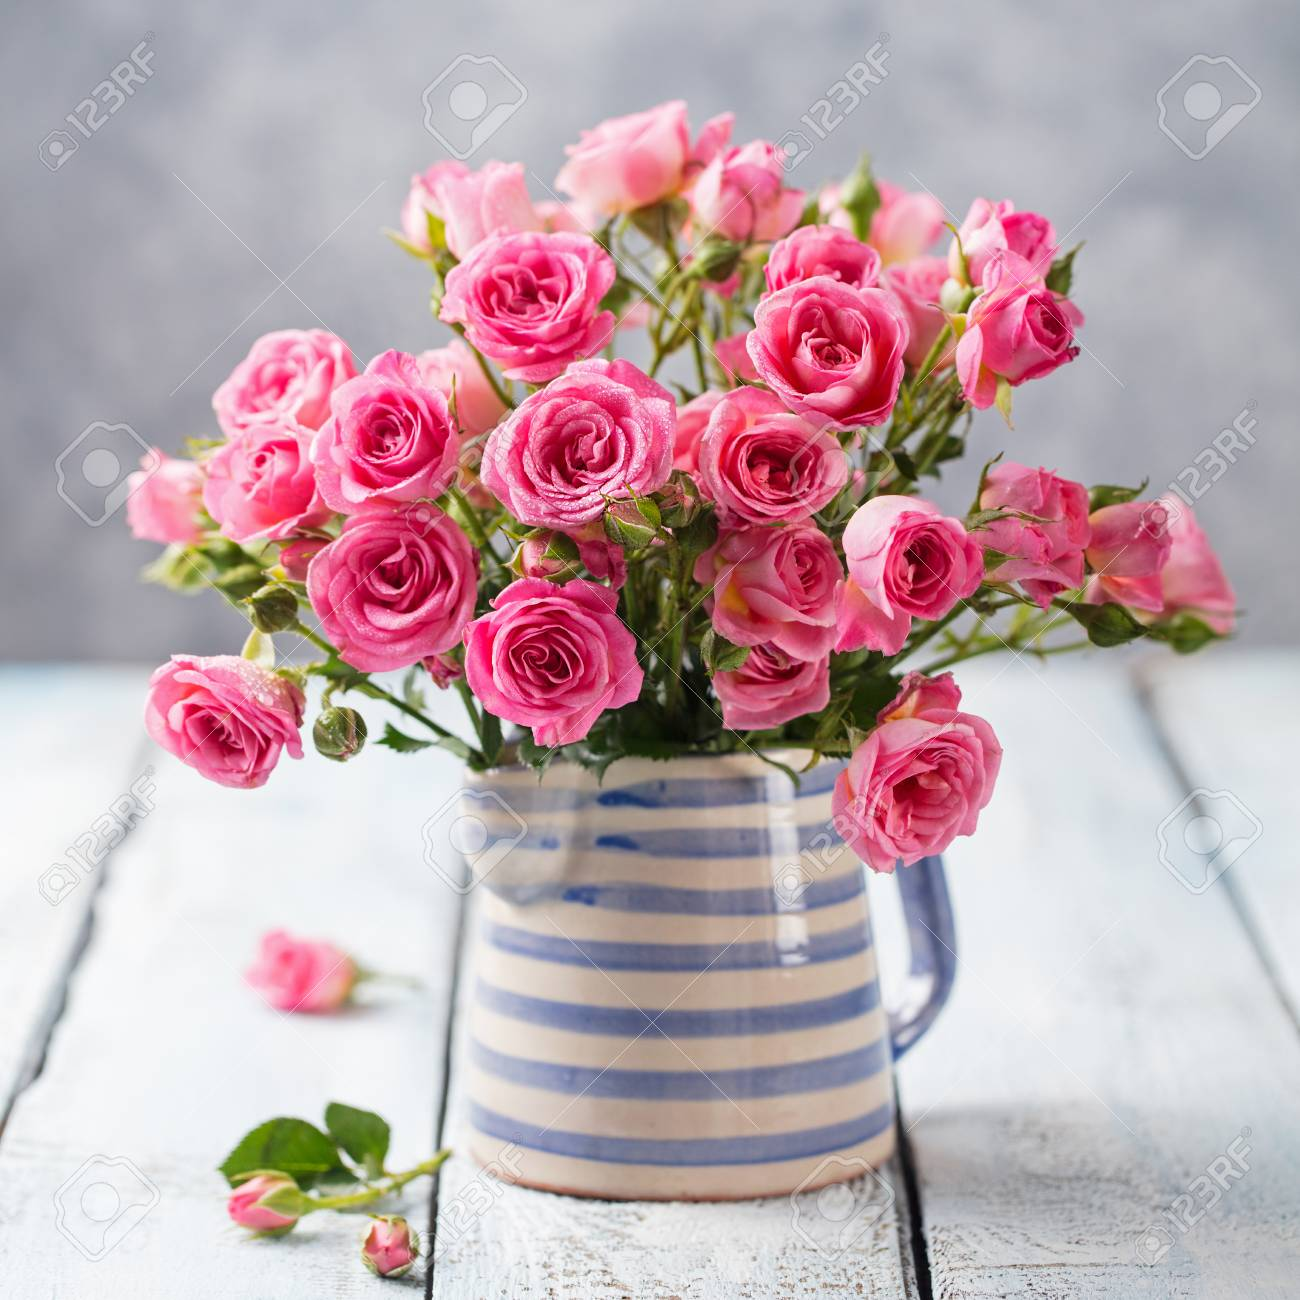 Romantic Bouquet Rose Flower Picturesque Flowe Picturesboss